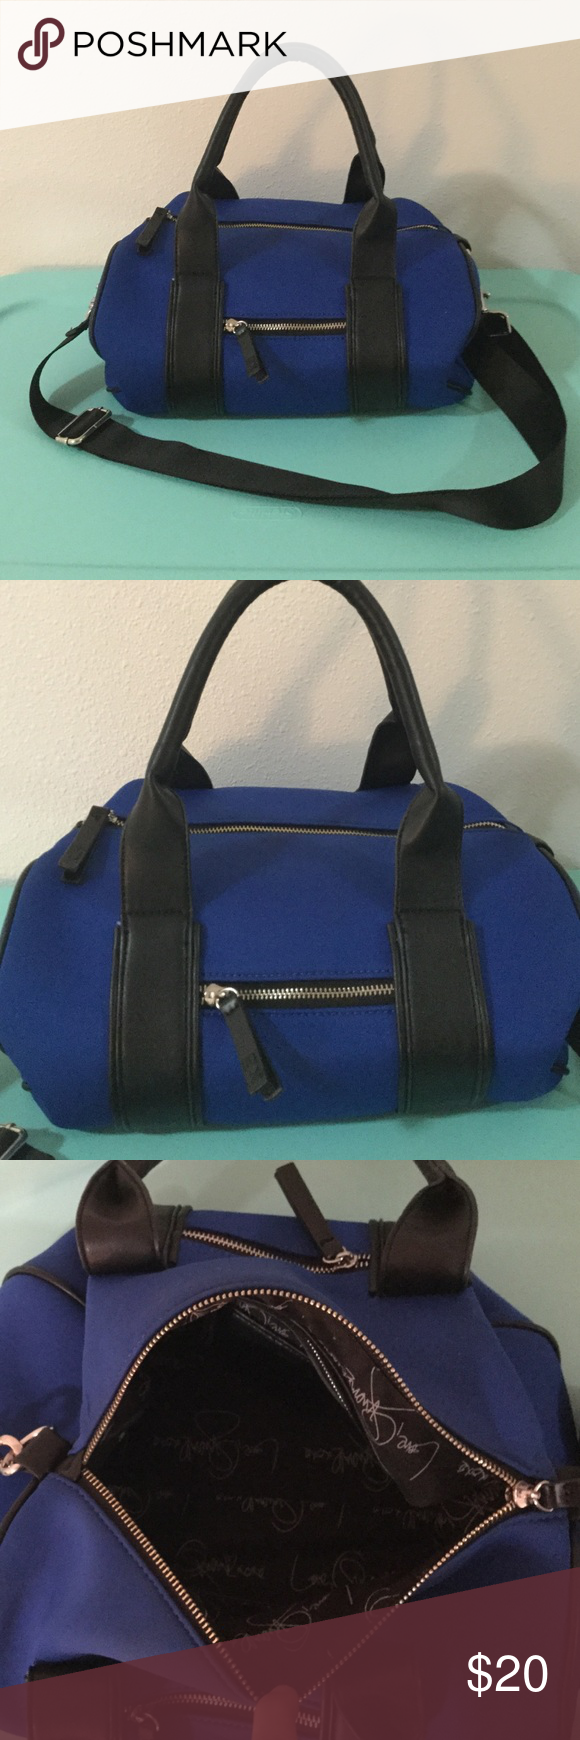 Gx by Gwen Stafani Top Handle Bag Cool blue top handle bag.  Used only a couple of times- great condition!  Comes with cross body strap, one inside zipper pocket and two inside slash pockets. GX by Gwen Stefani Bags Satchels